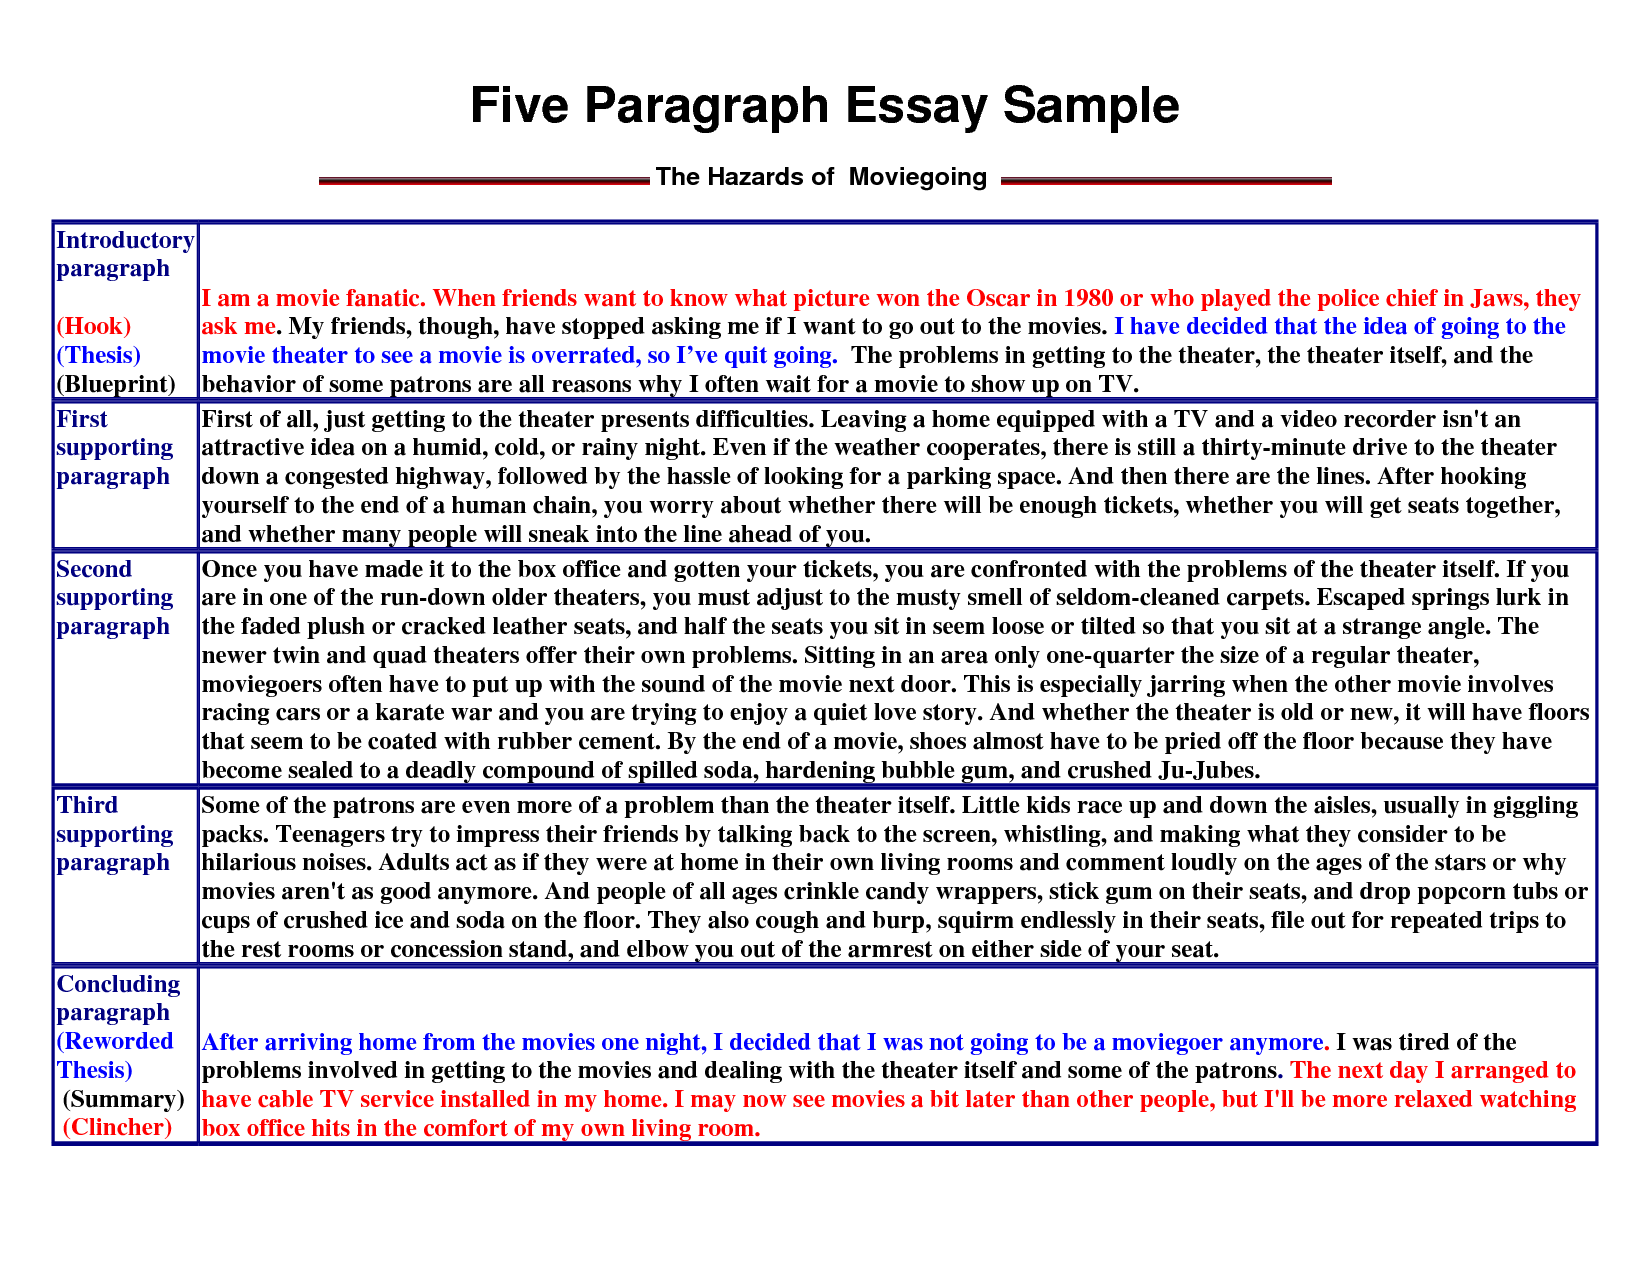 universities guides totally free essays